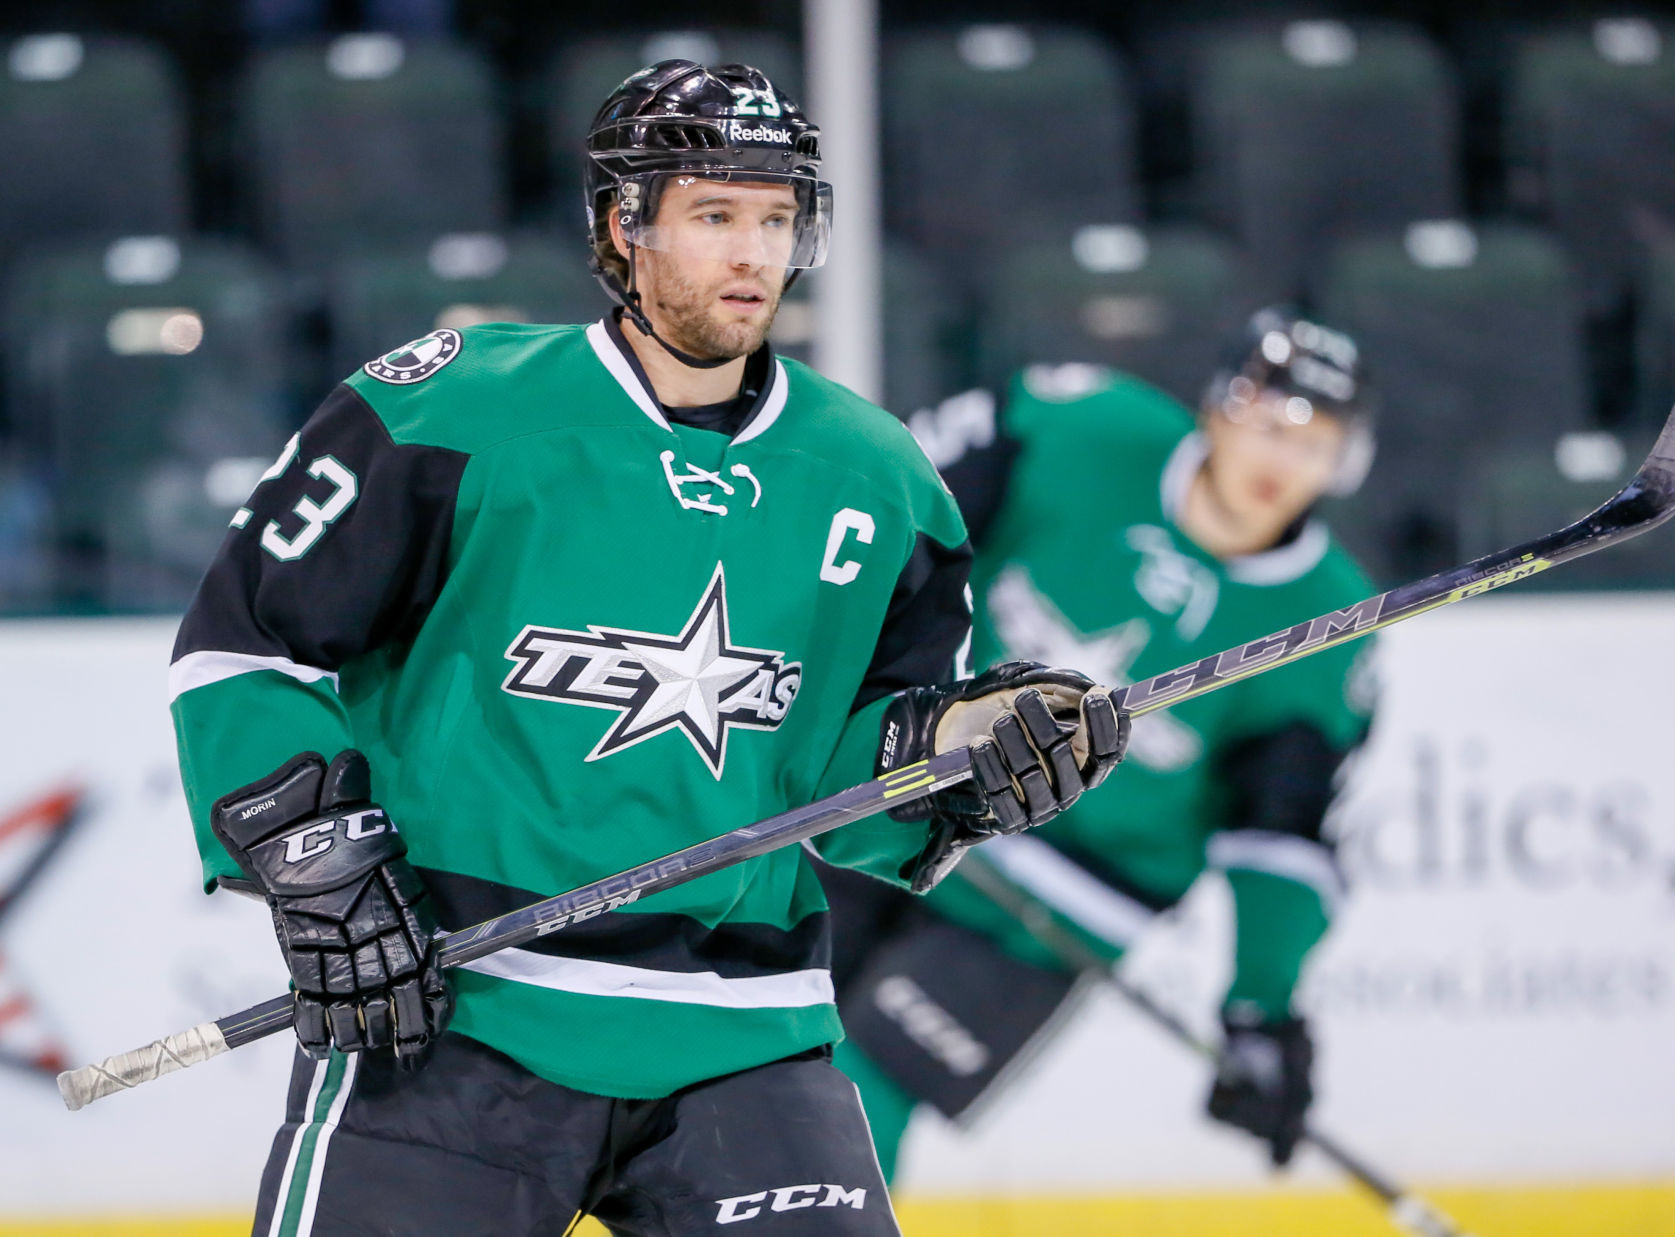 Stars captain Travis Morin will return for his ninth season with the team. He is the only player to play every season with the Stars since they moved to Cedar Park in 2009.